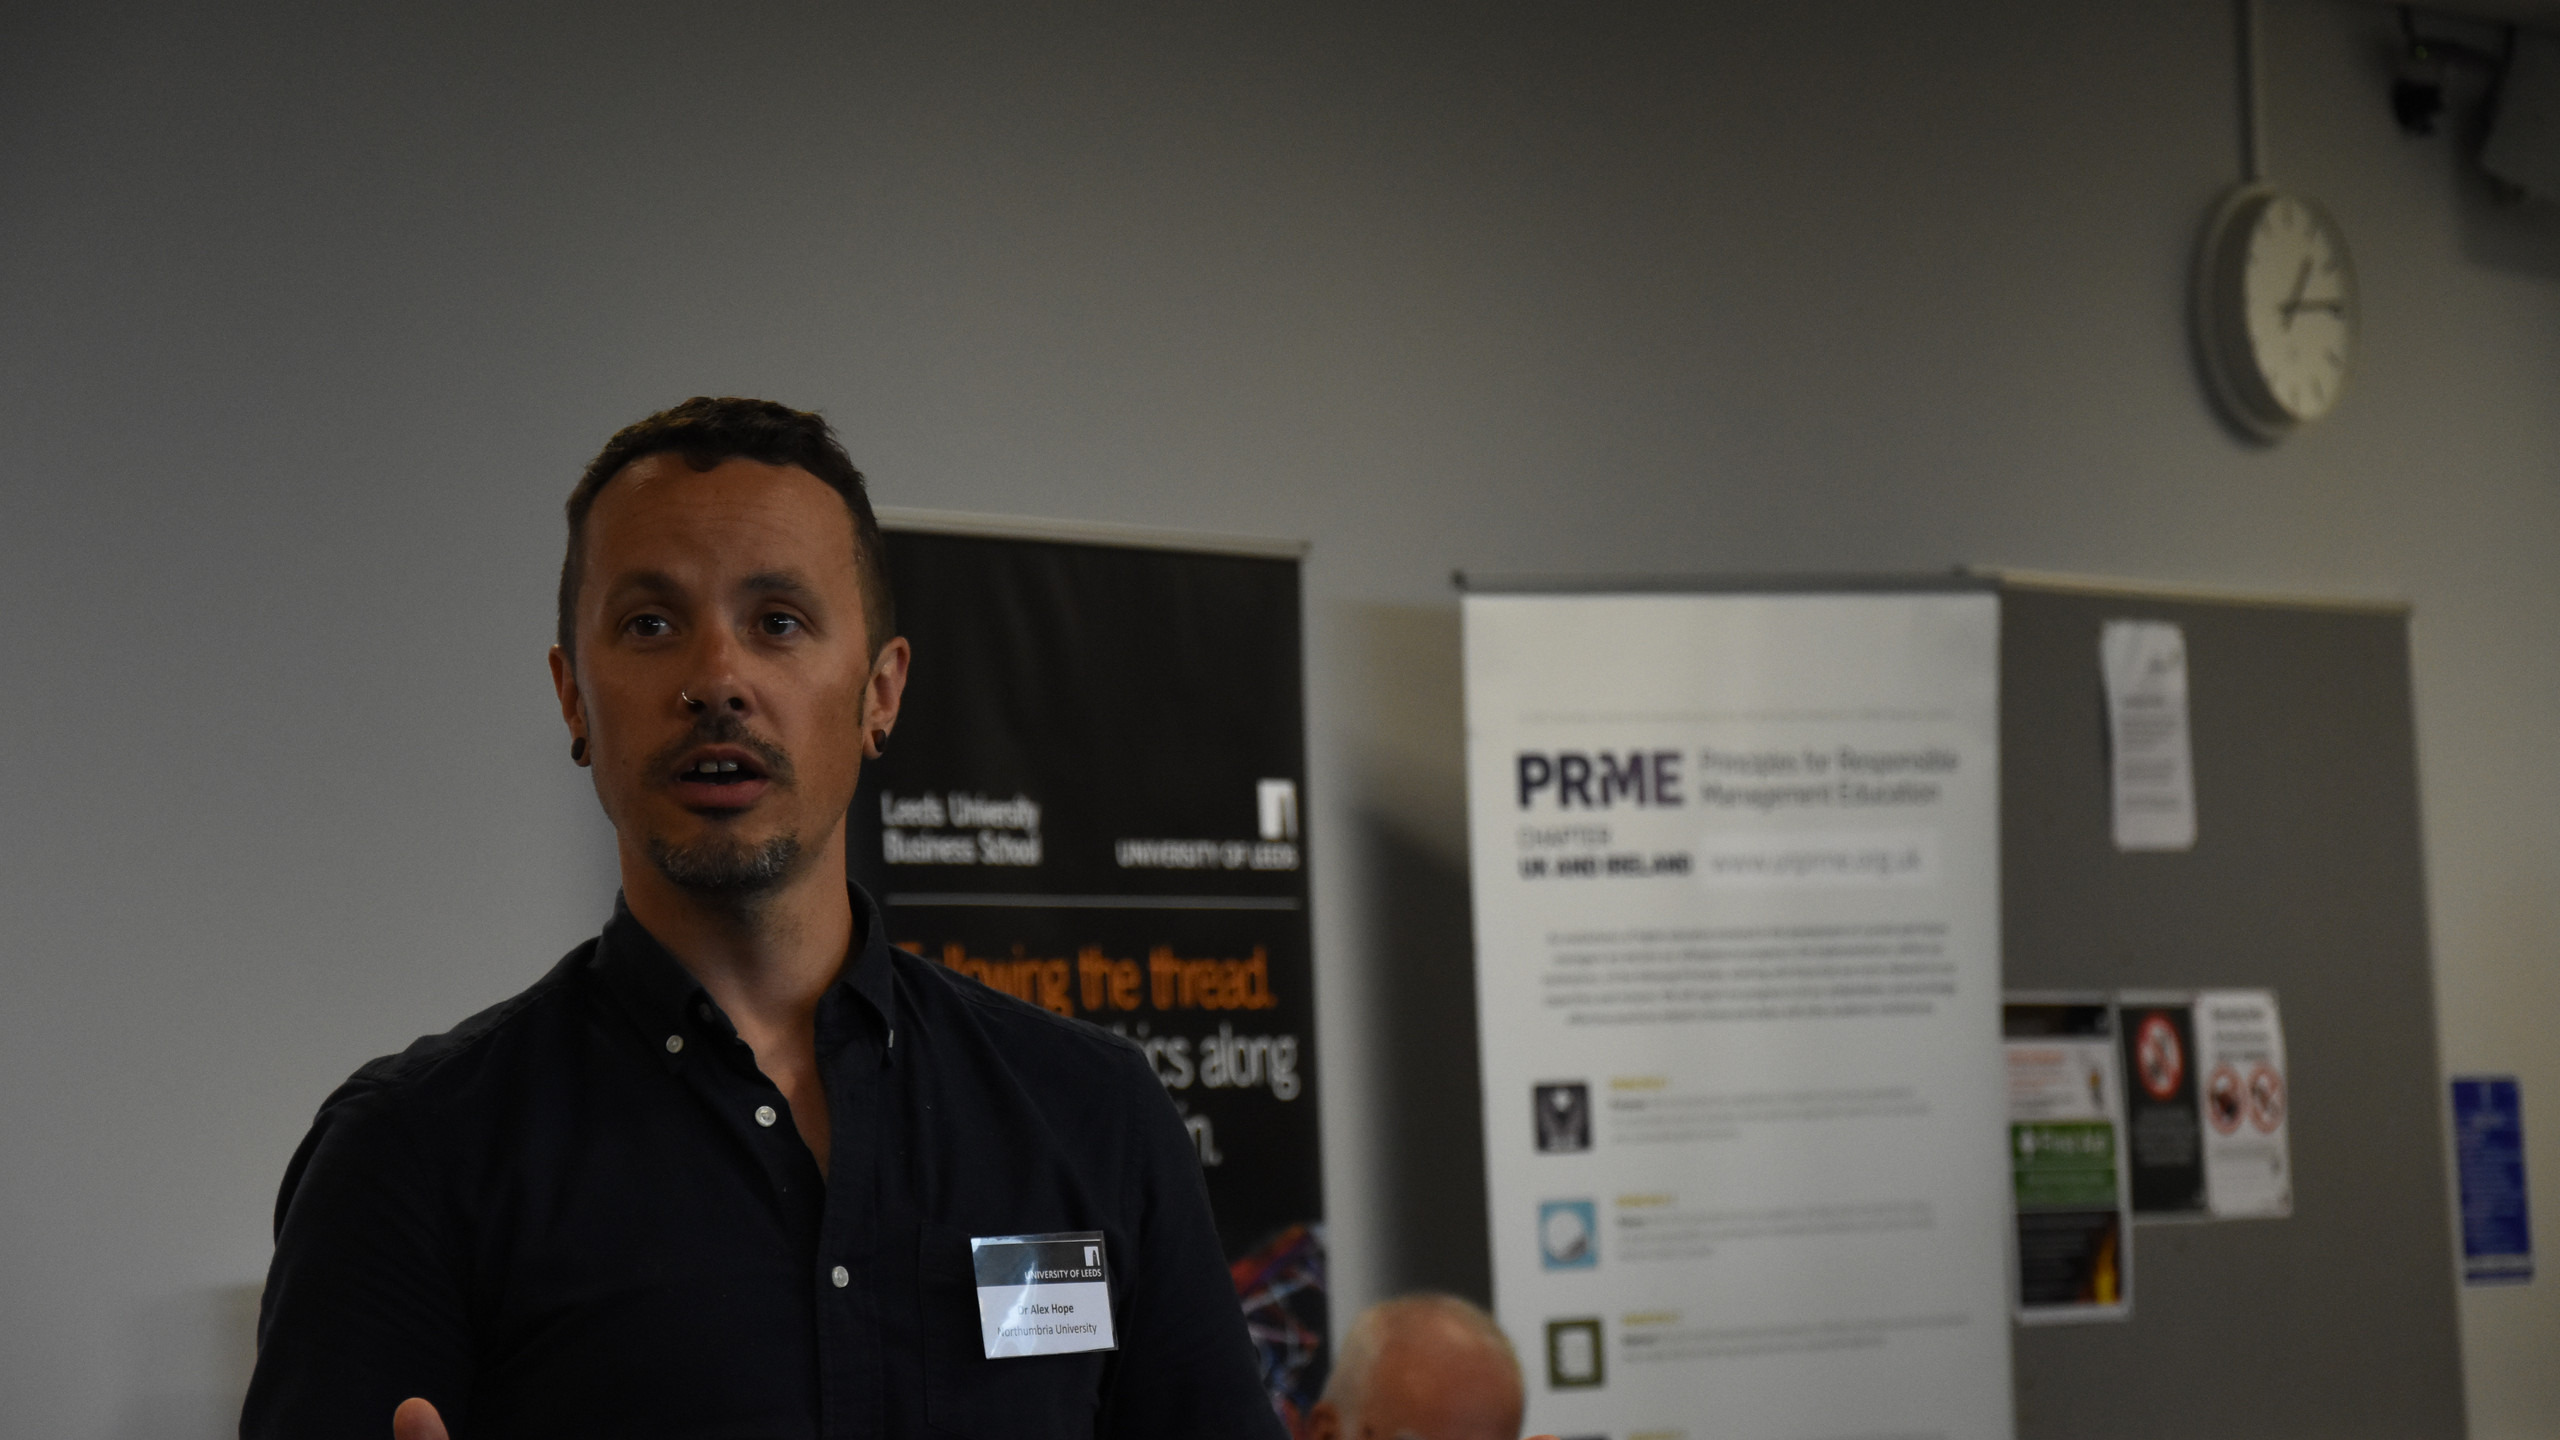 prme-conference-july-2019_48315617507_o.